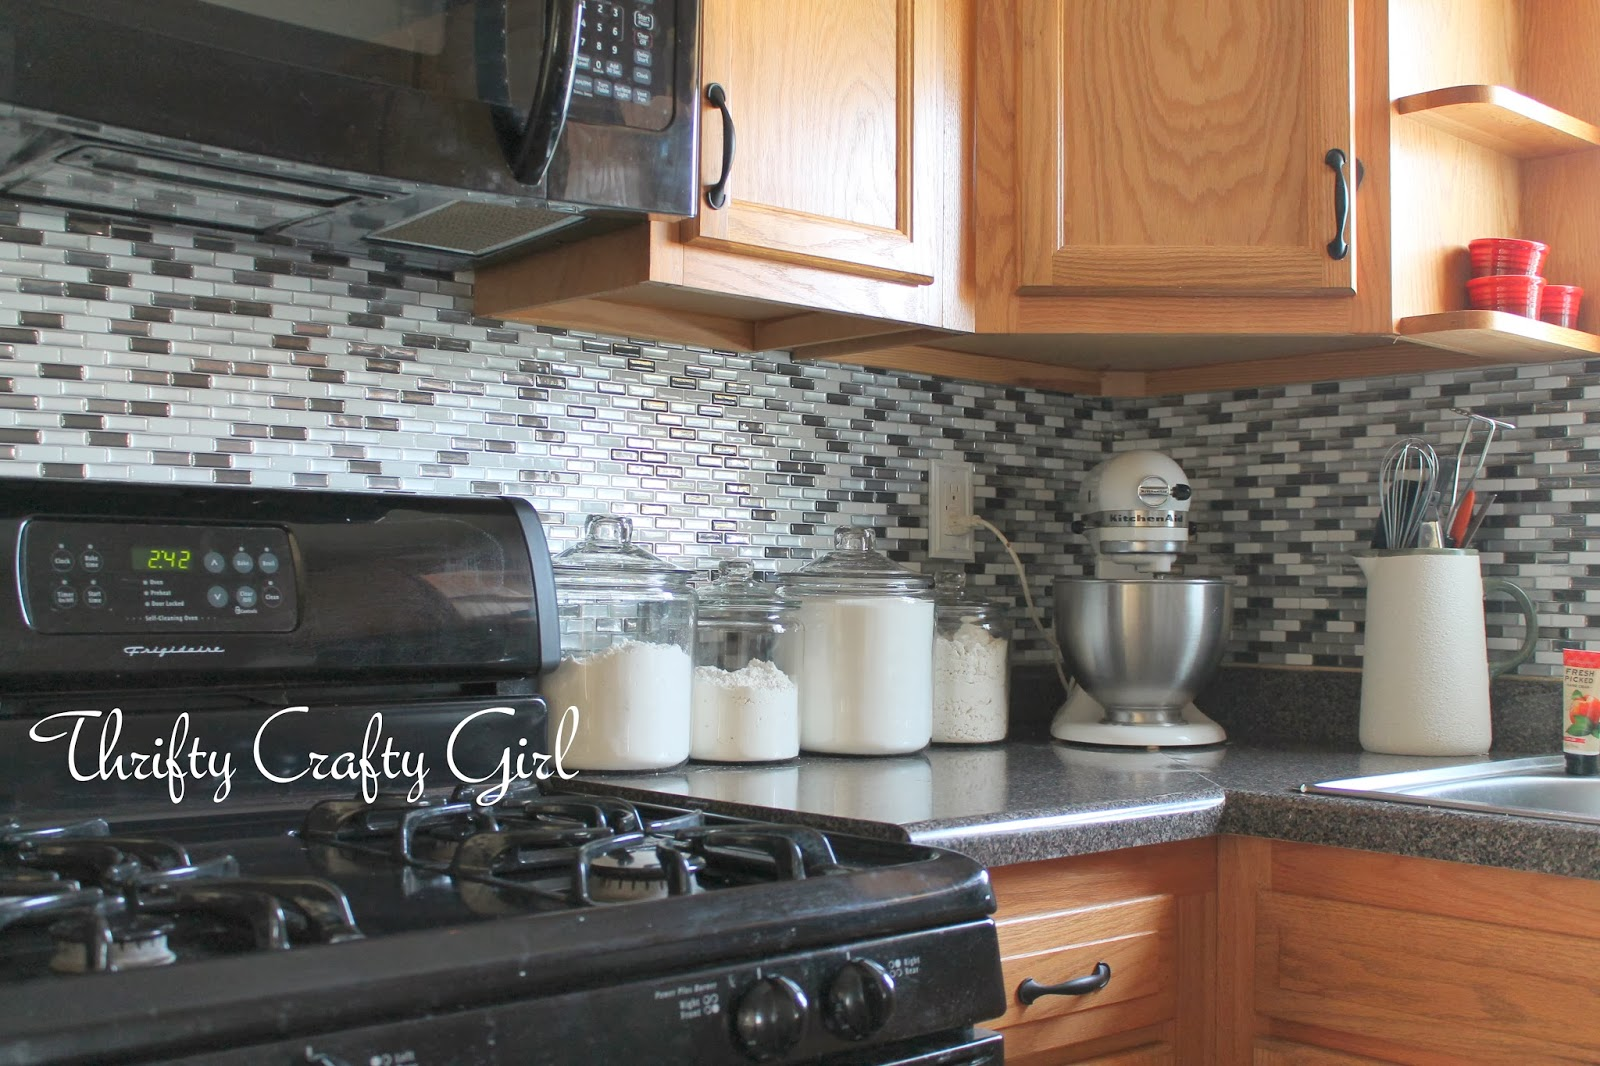 Thrifty crafty girl easy kitchen backsplash with smart tiles for Carrelage smart tiles leroy merlin